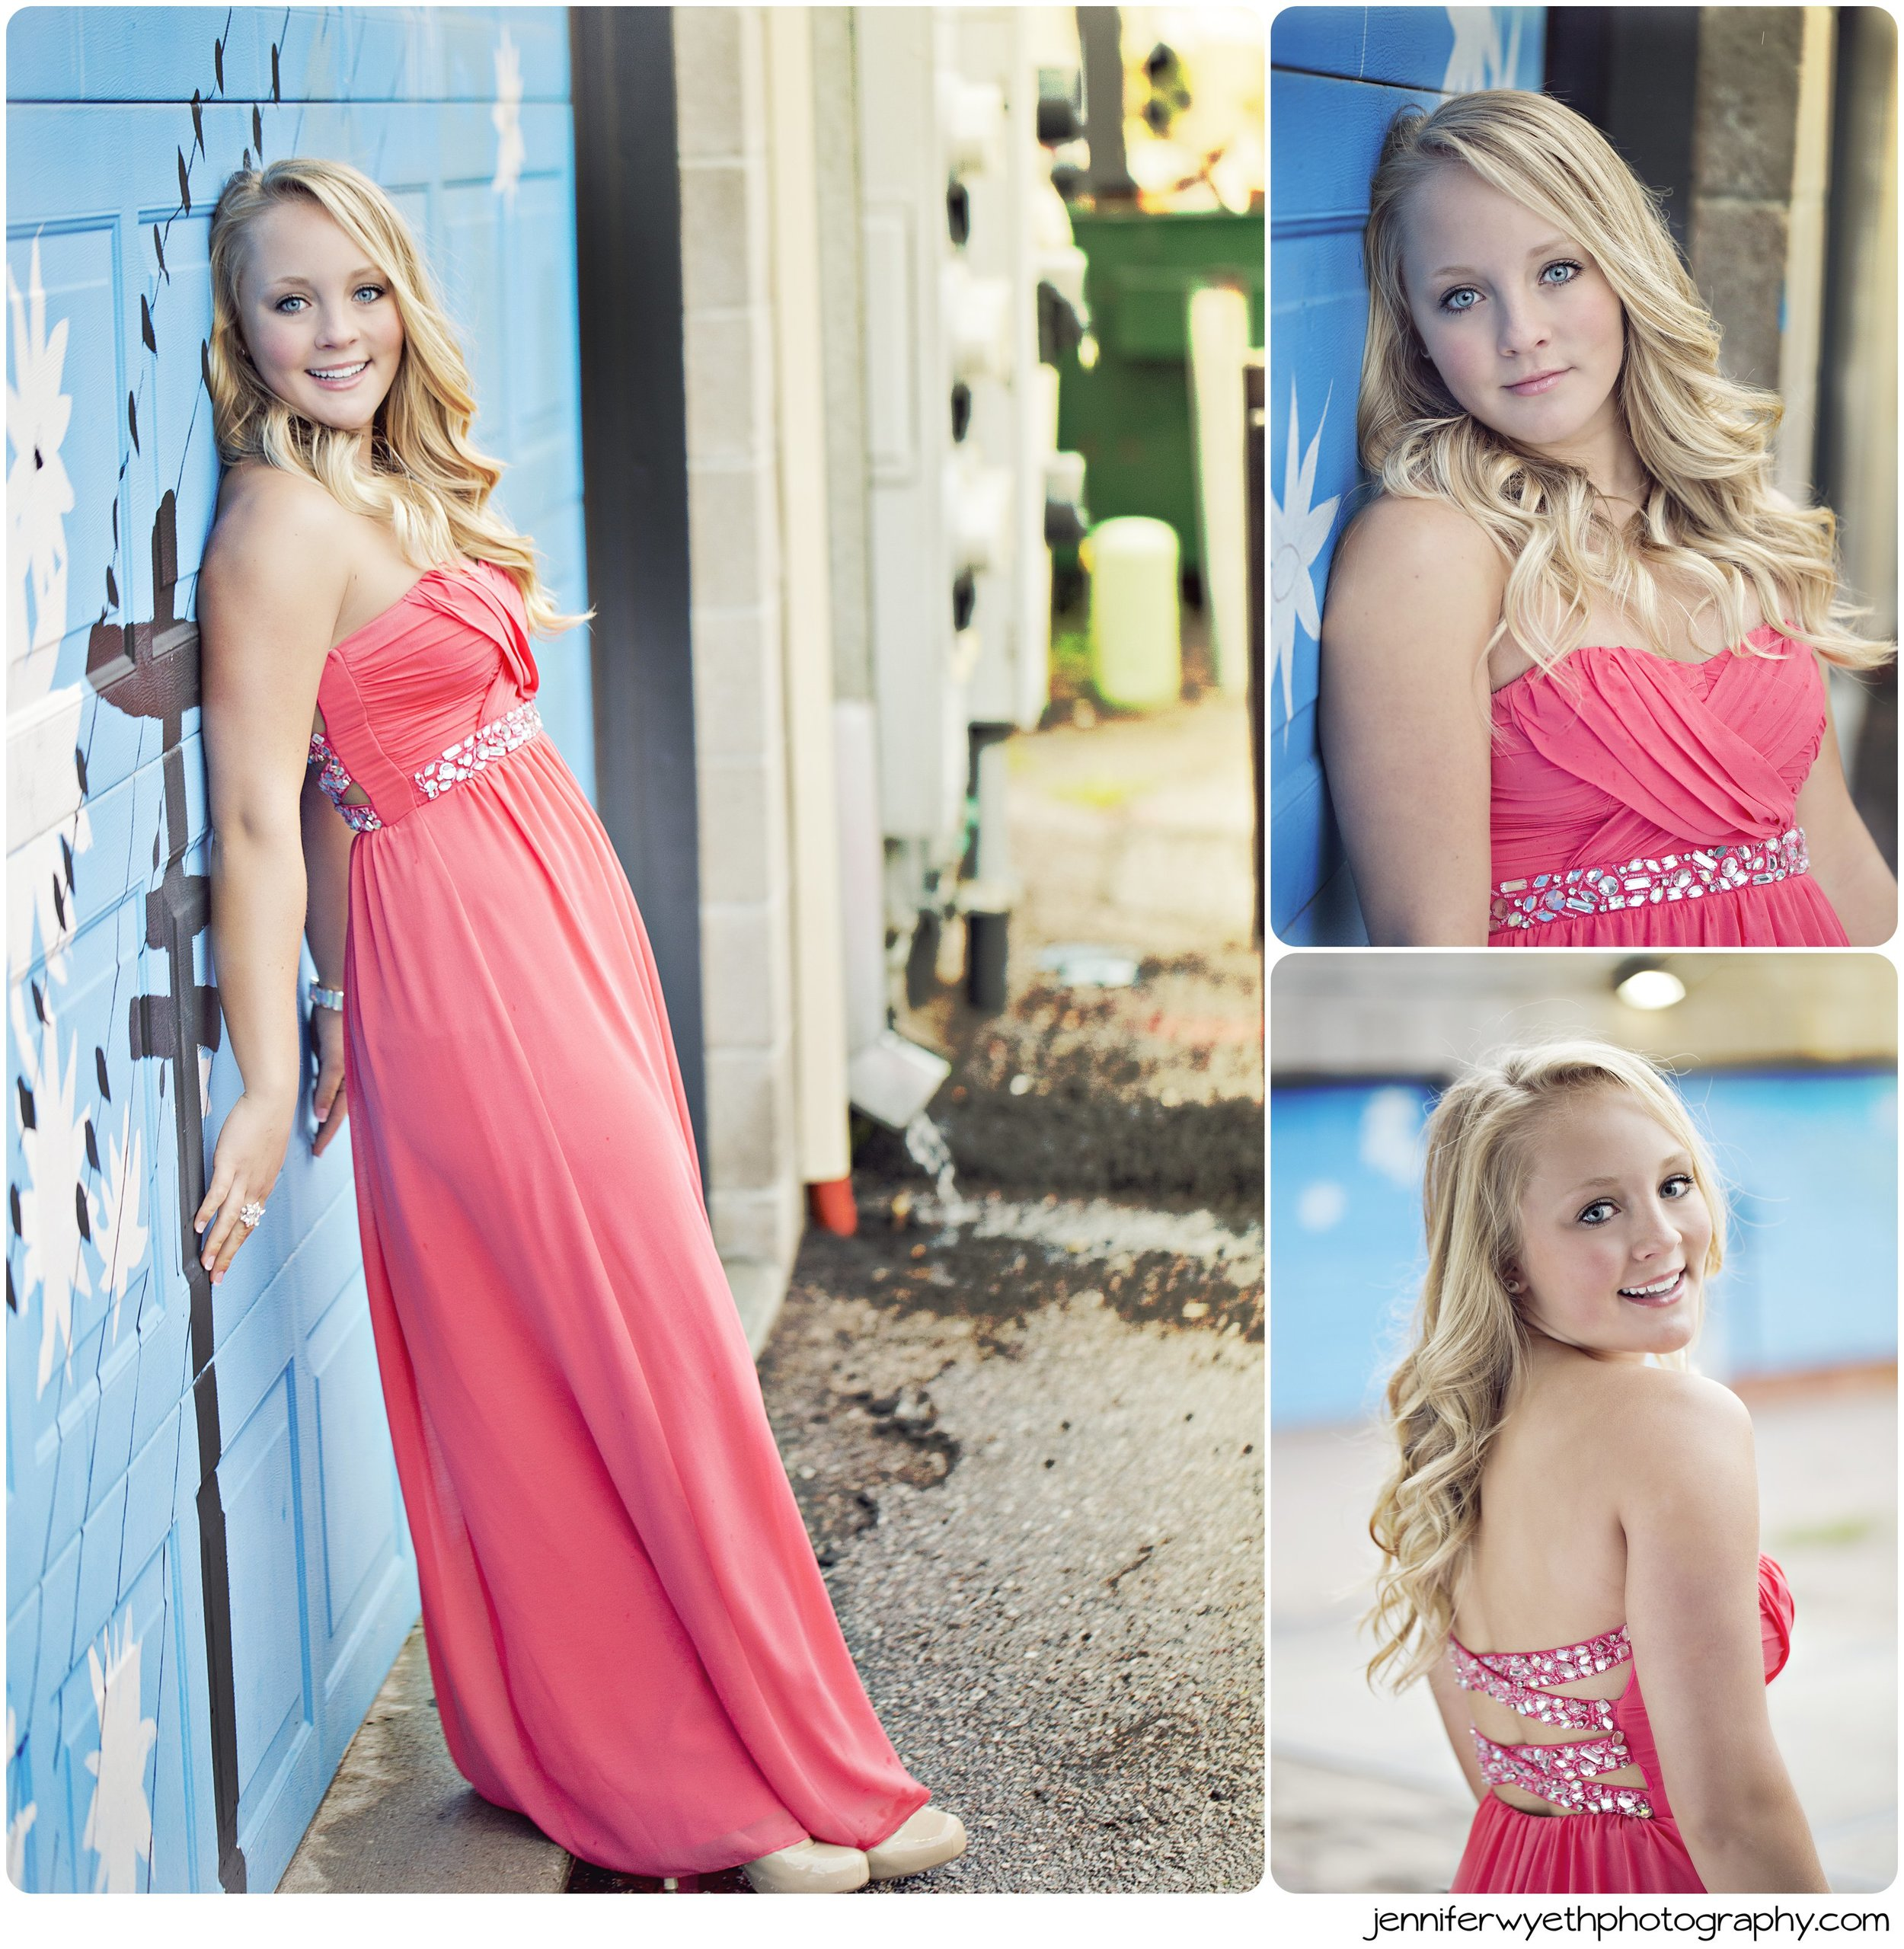 Beautiful blonde girl leans against blue garage in prom dress